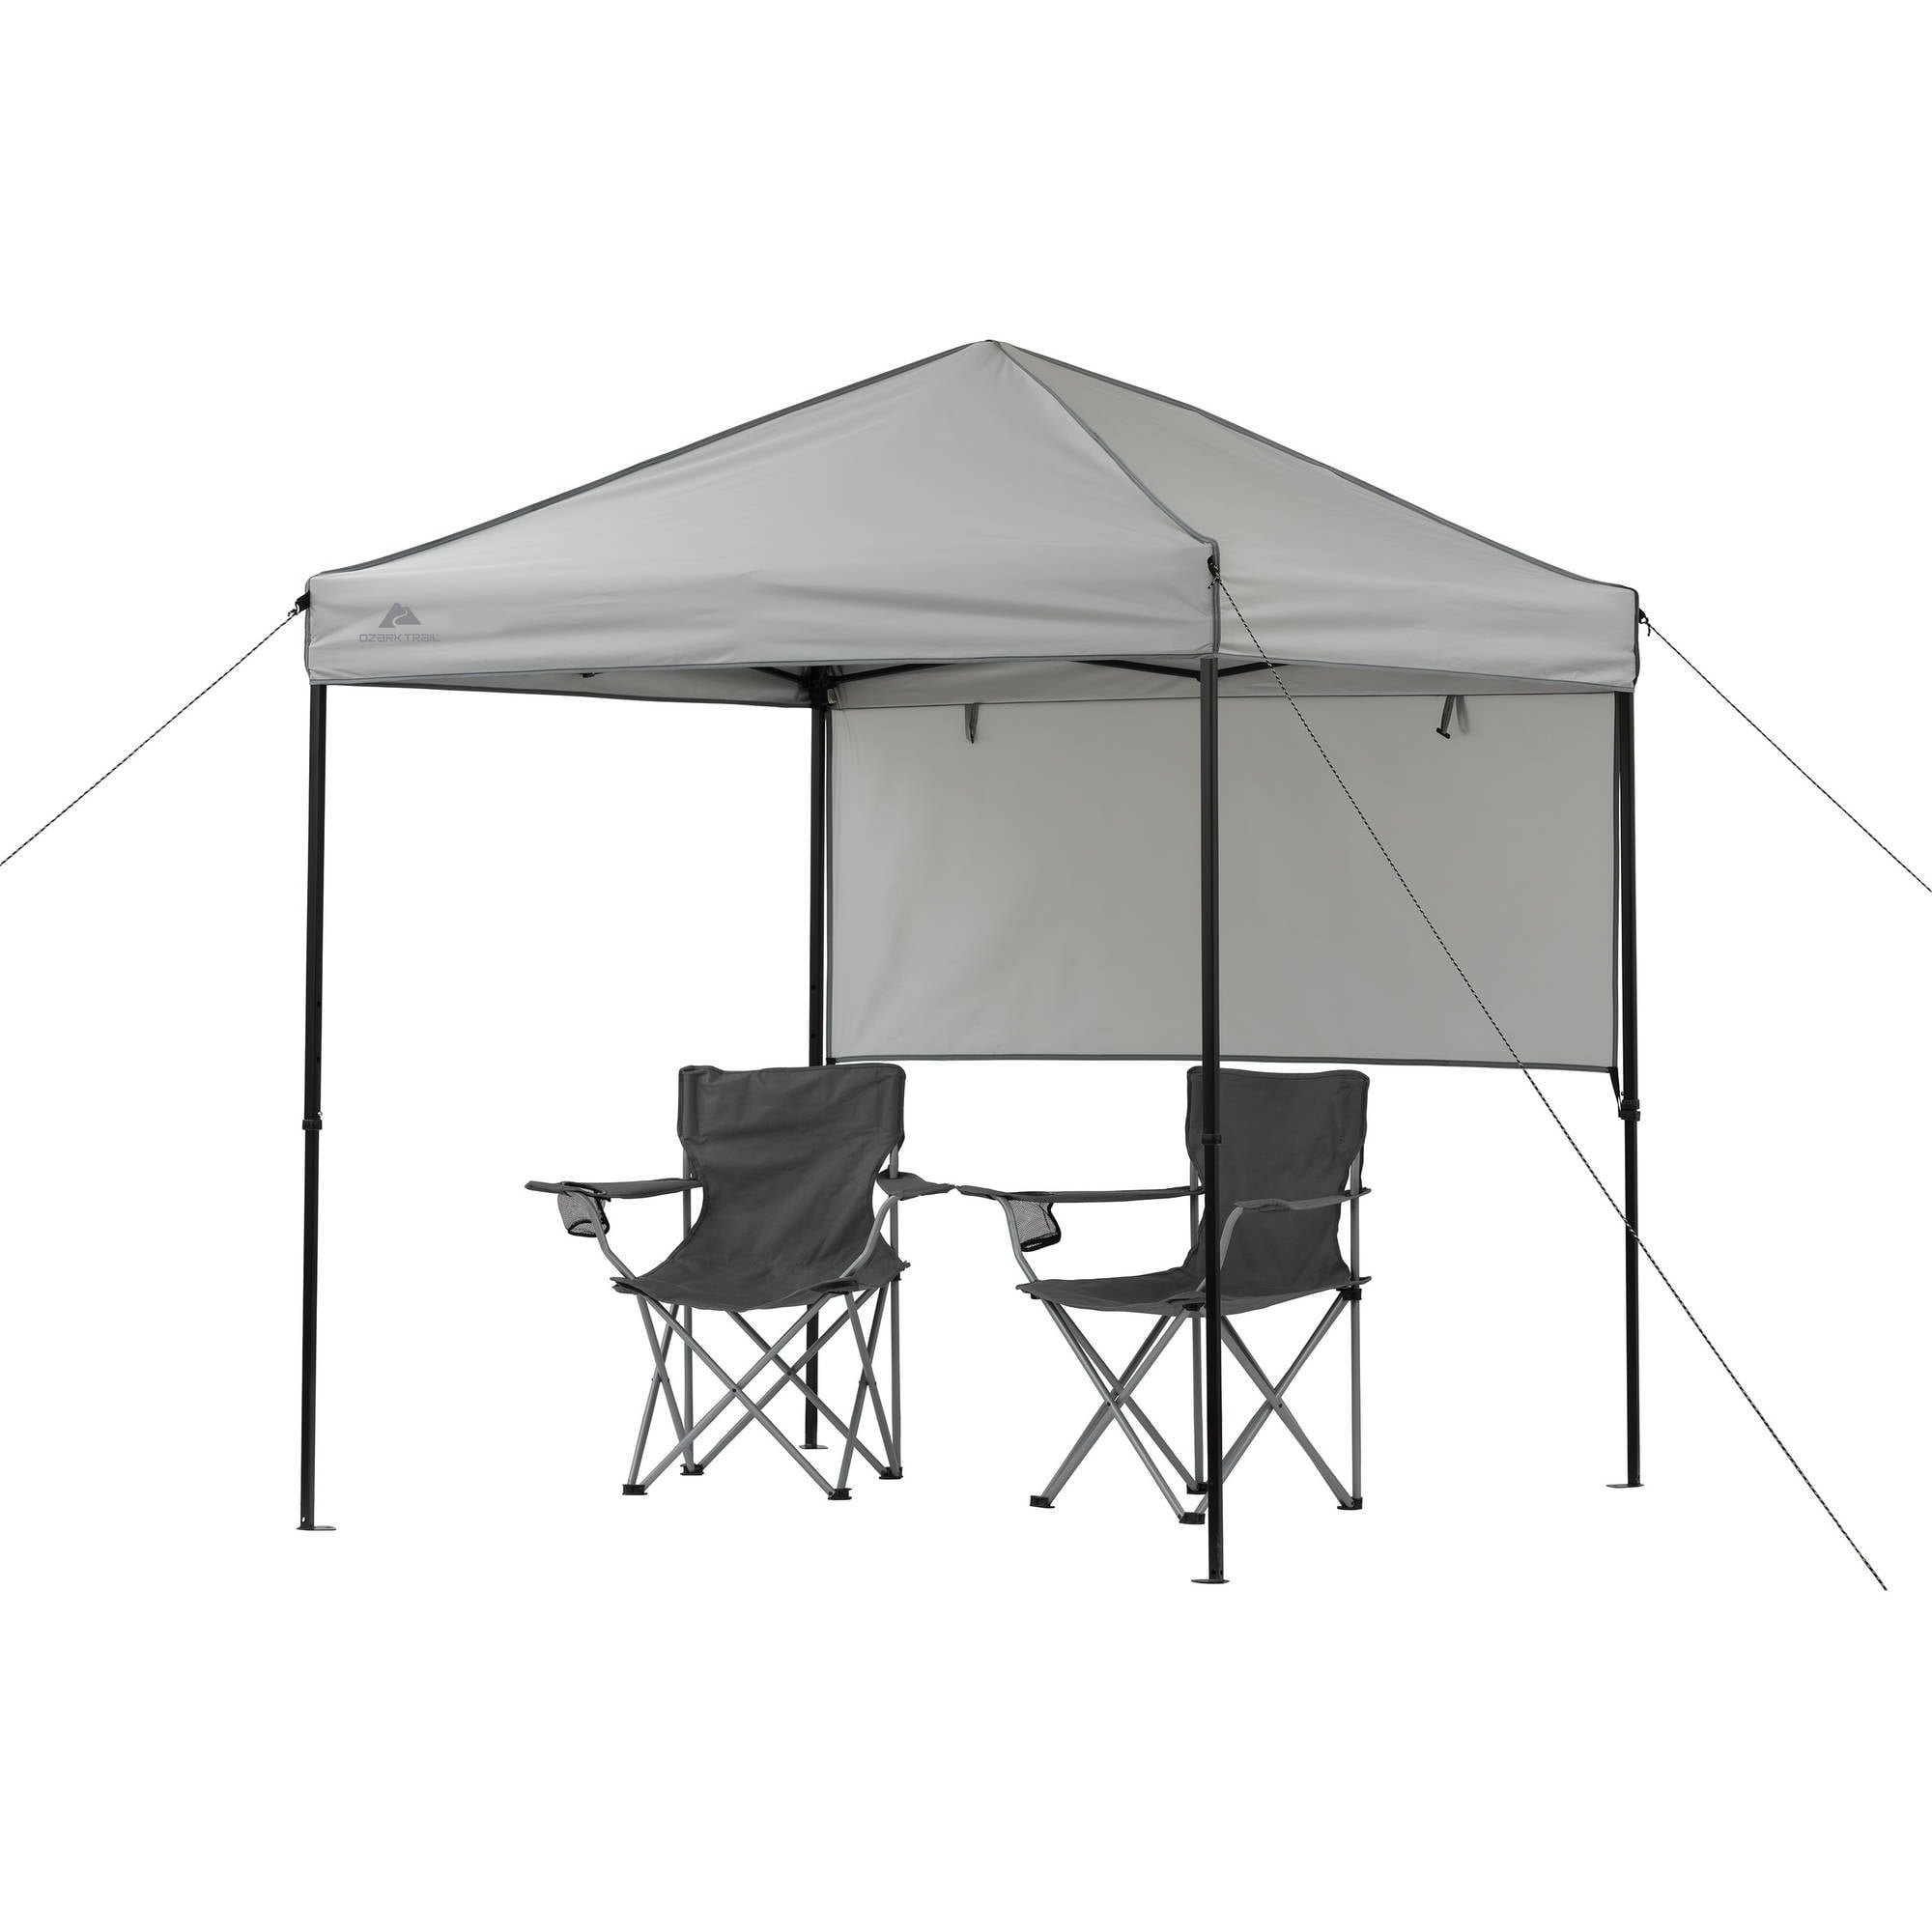 CANOPY TENT OZARK TRAIL INSTANT SPORT 6u0027 x 6u0027 Party Wall Outdoor C&ing Shelter  sc 1 st  eBay & CANOPY TENT OZARK TRAIL INSTANT SPORT 6u0027 x 6u0027 Party Wall Outdoor ...